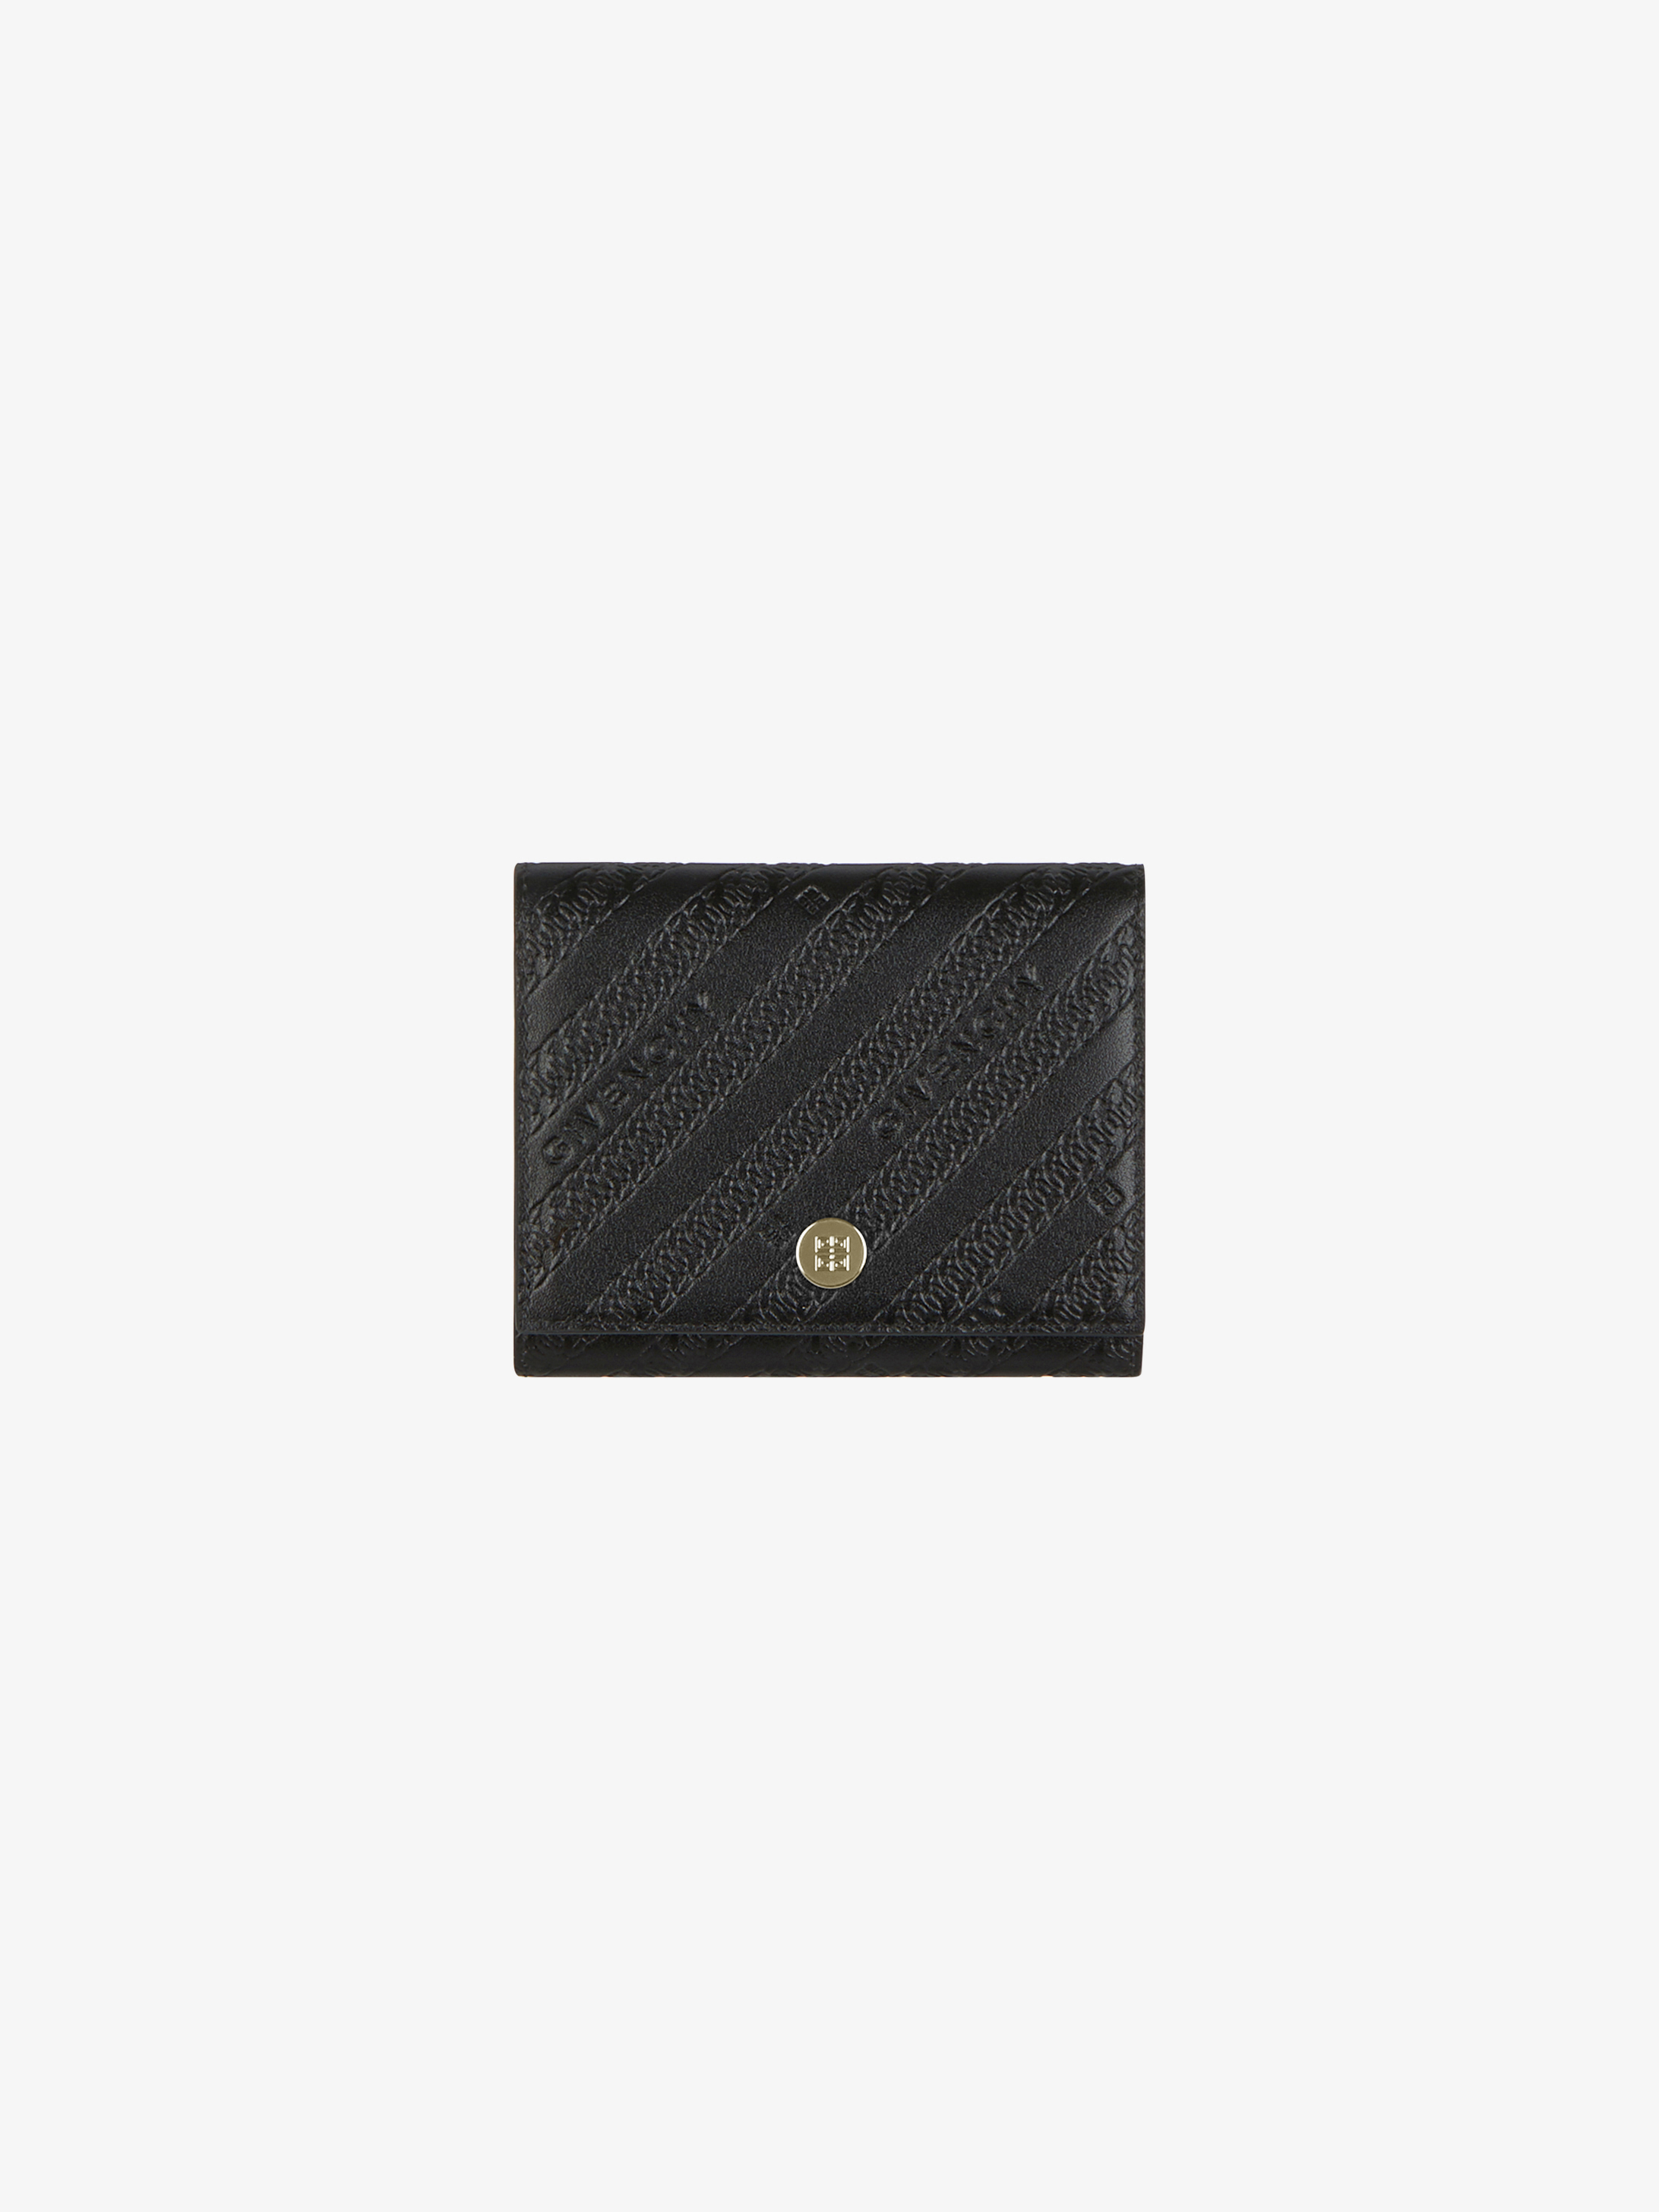 Tri-fold wallet  in GIVENCHY chain leather